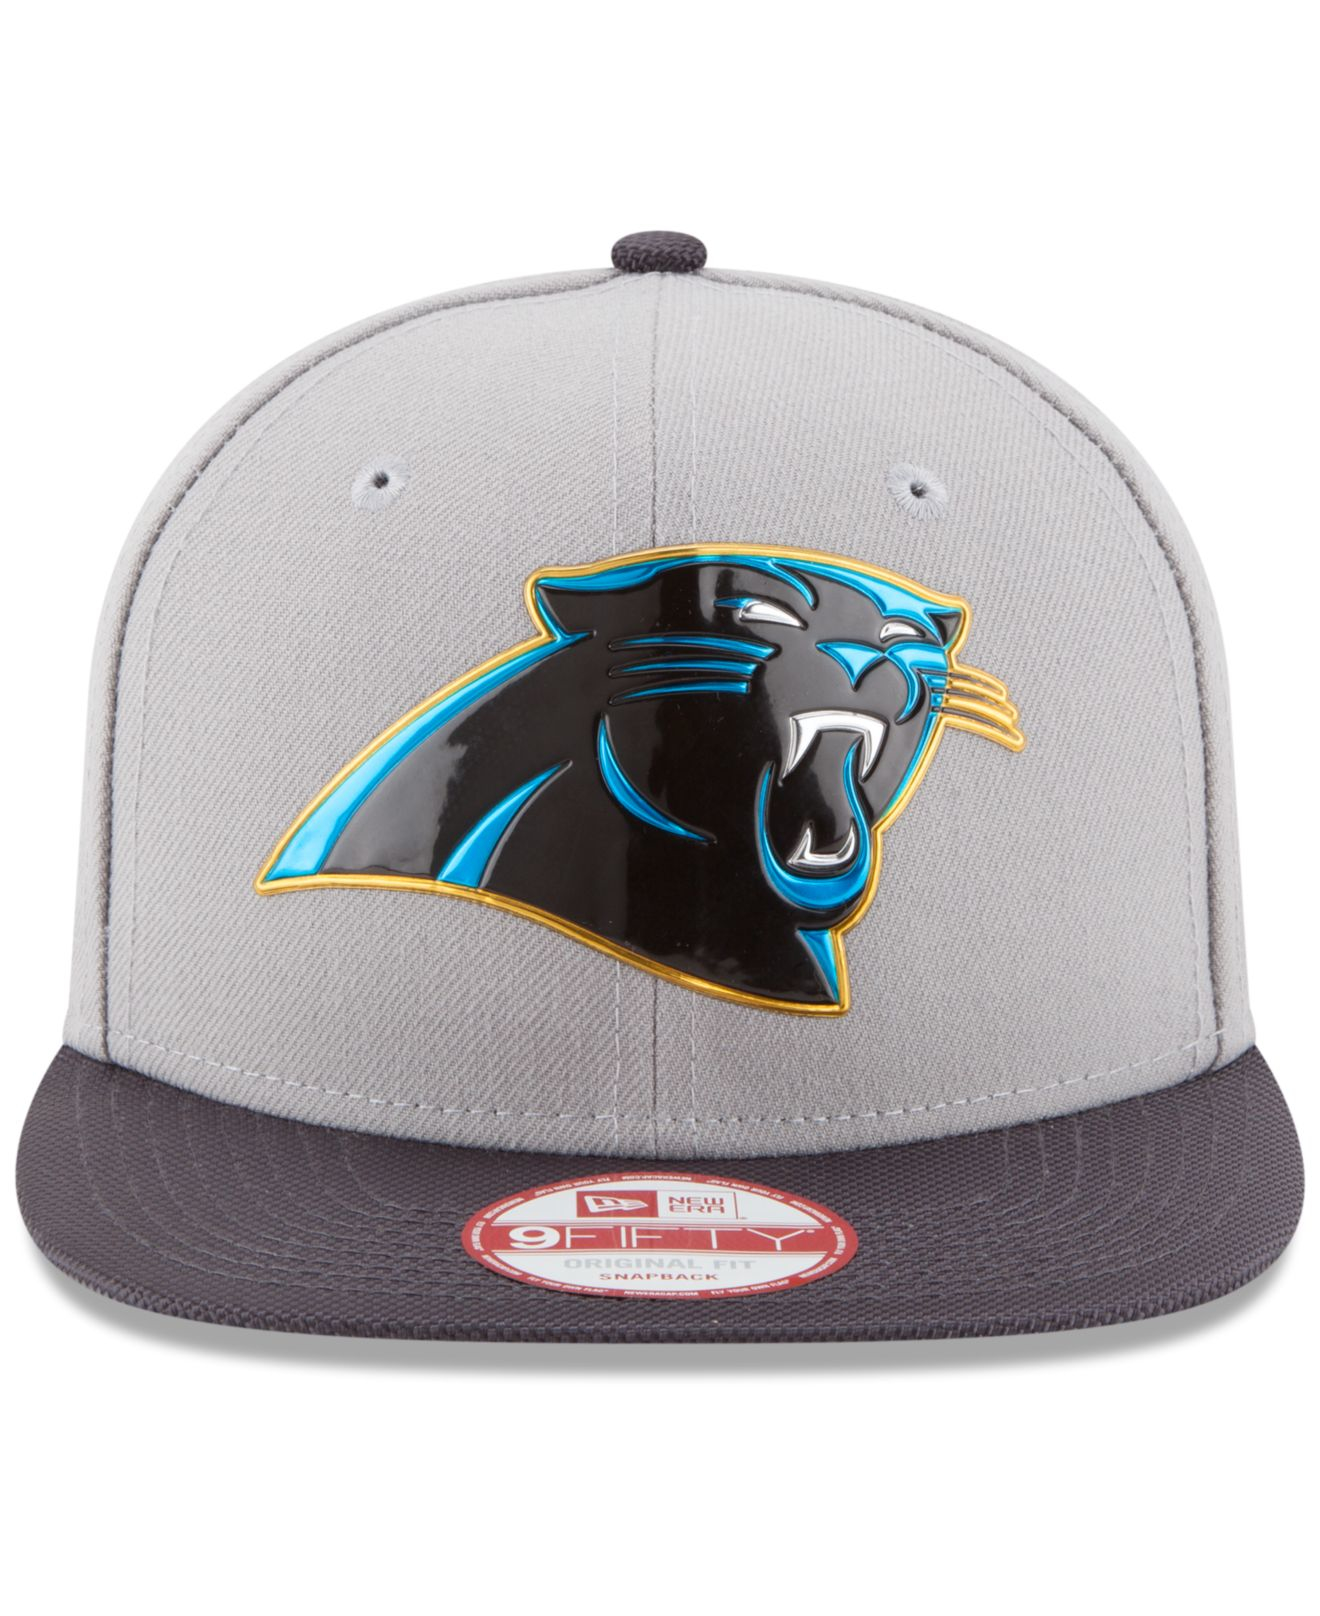 premium selection bf579 a9cba KTZ Carolina Panthers Gold Collection 9fifty Snapback Cap in Gray ...